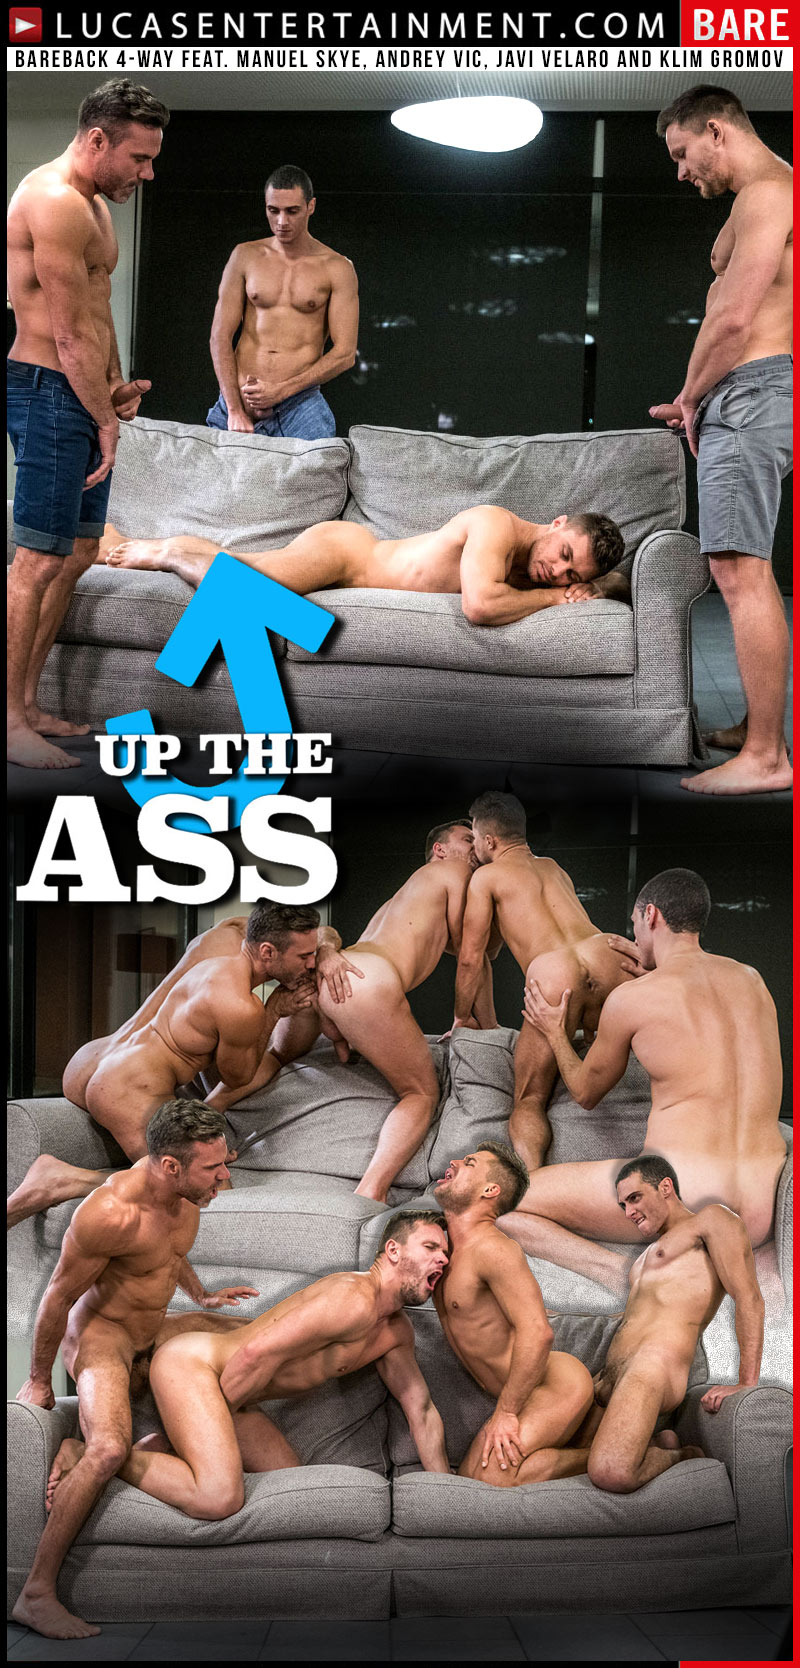 Up The Ass, Scene 3 (Bareback 4-Way feat. Manuel Skye, Andrey Vic, Javi Velaro and Klim Gromov) at Lucas Entertainment